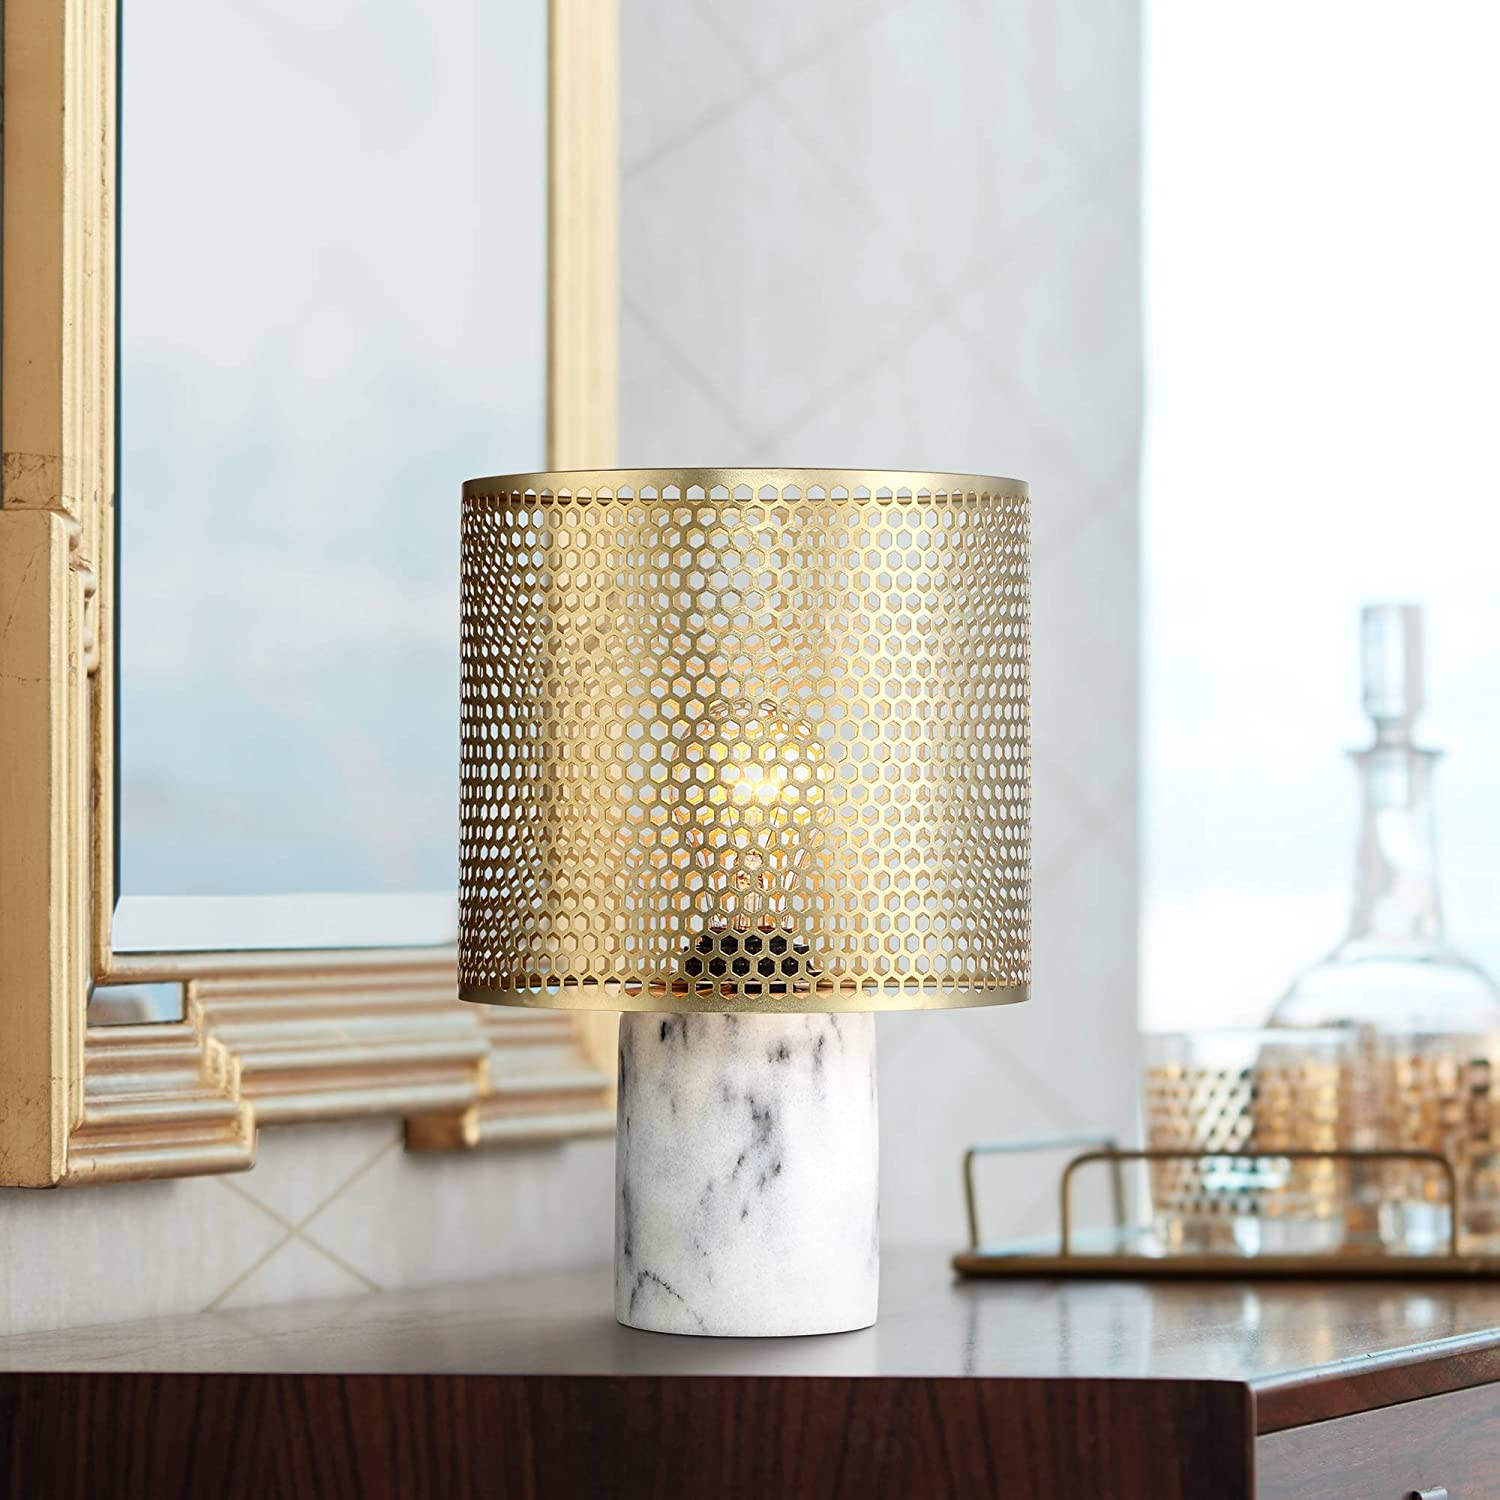 "Elijah Modern Accent Table Lamp 11 1/2"" High White Faux Marble Base Brass Hexagon Cutouts Shade for Bedroom Bedside Office - 360 Lighting"